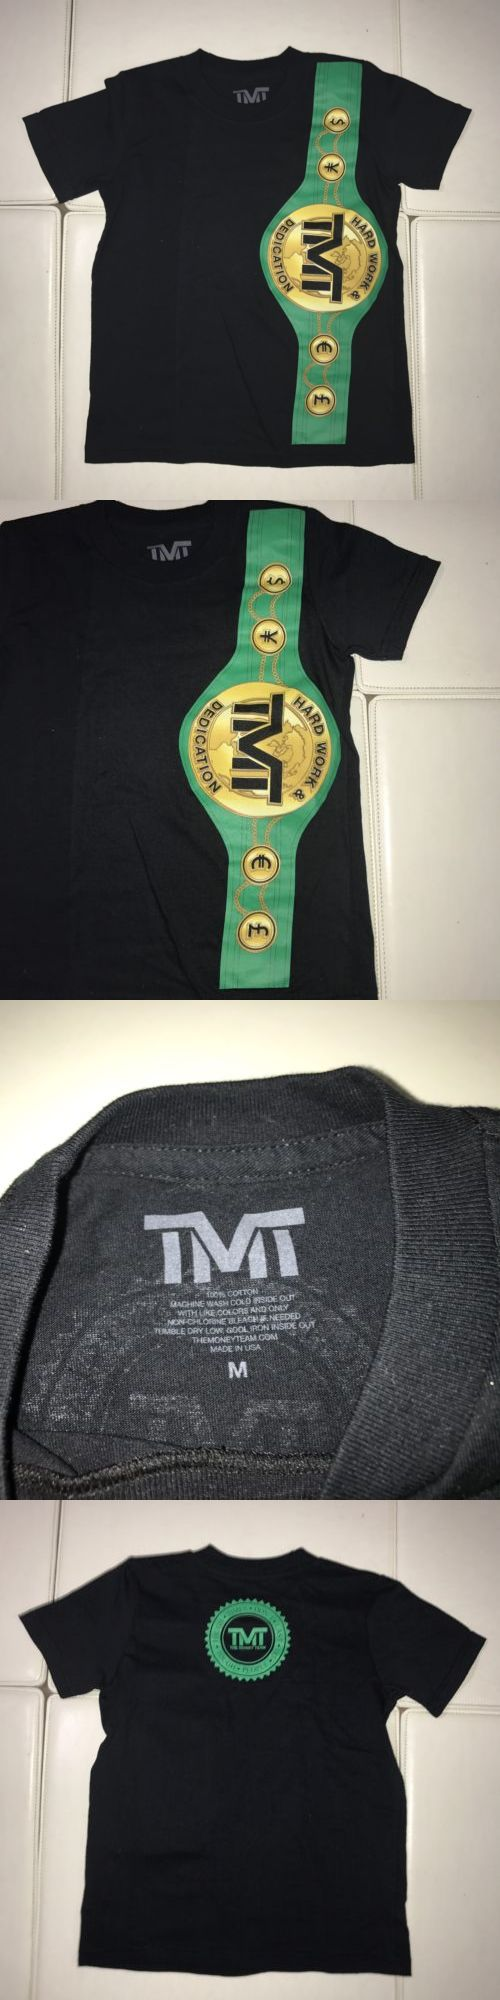 Tops and T-Shirts 155199: Toddler Kids Official Floyd Mayweather Shirt Tmt Mexico M Boxing Tbe Money Team -> BUY IT NOW ONLY: $49.99 on eBay!